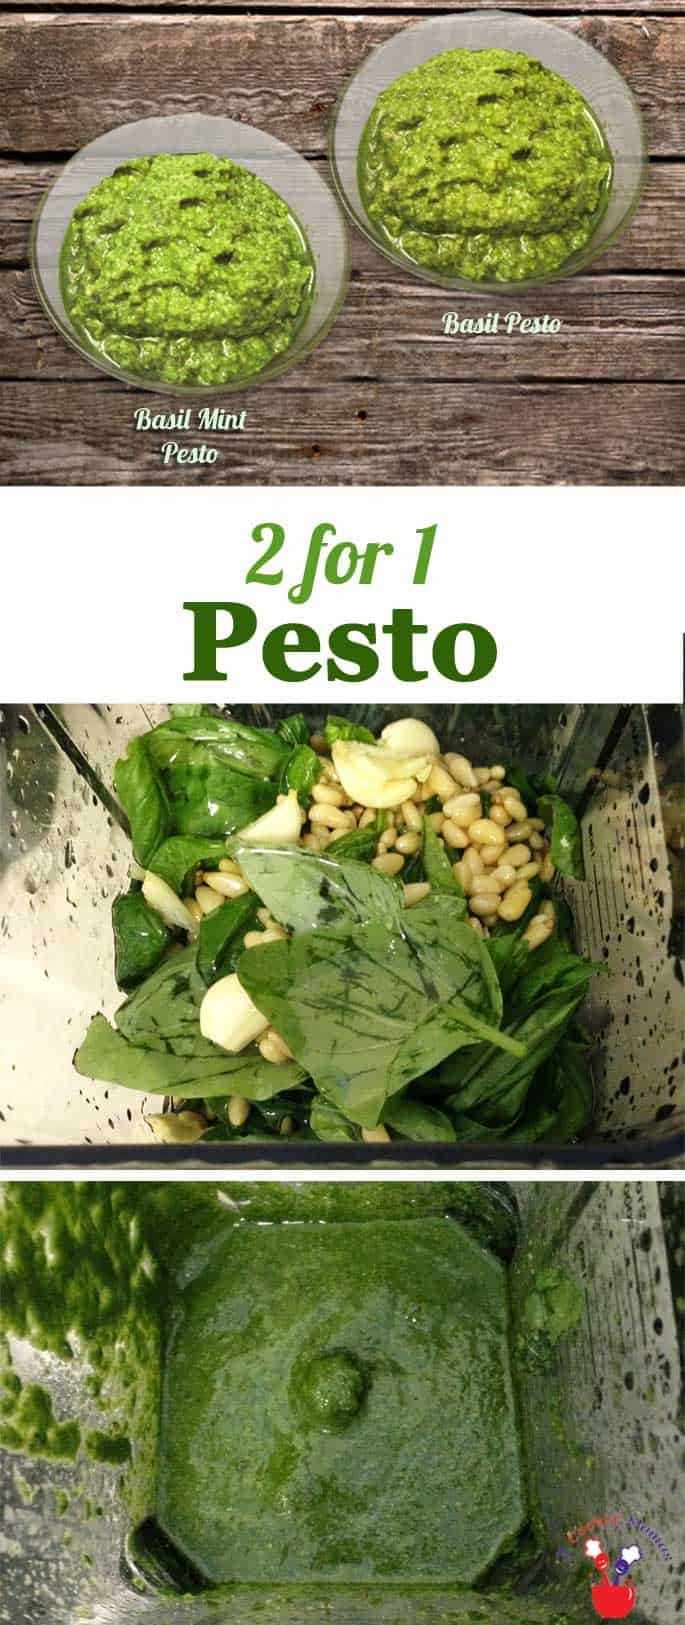 When there's plenty of basil, make one of these delicious pestos. Basil and Mint Pesto can be used for pizza, pasta, in lieu of mayo or just about anything.